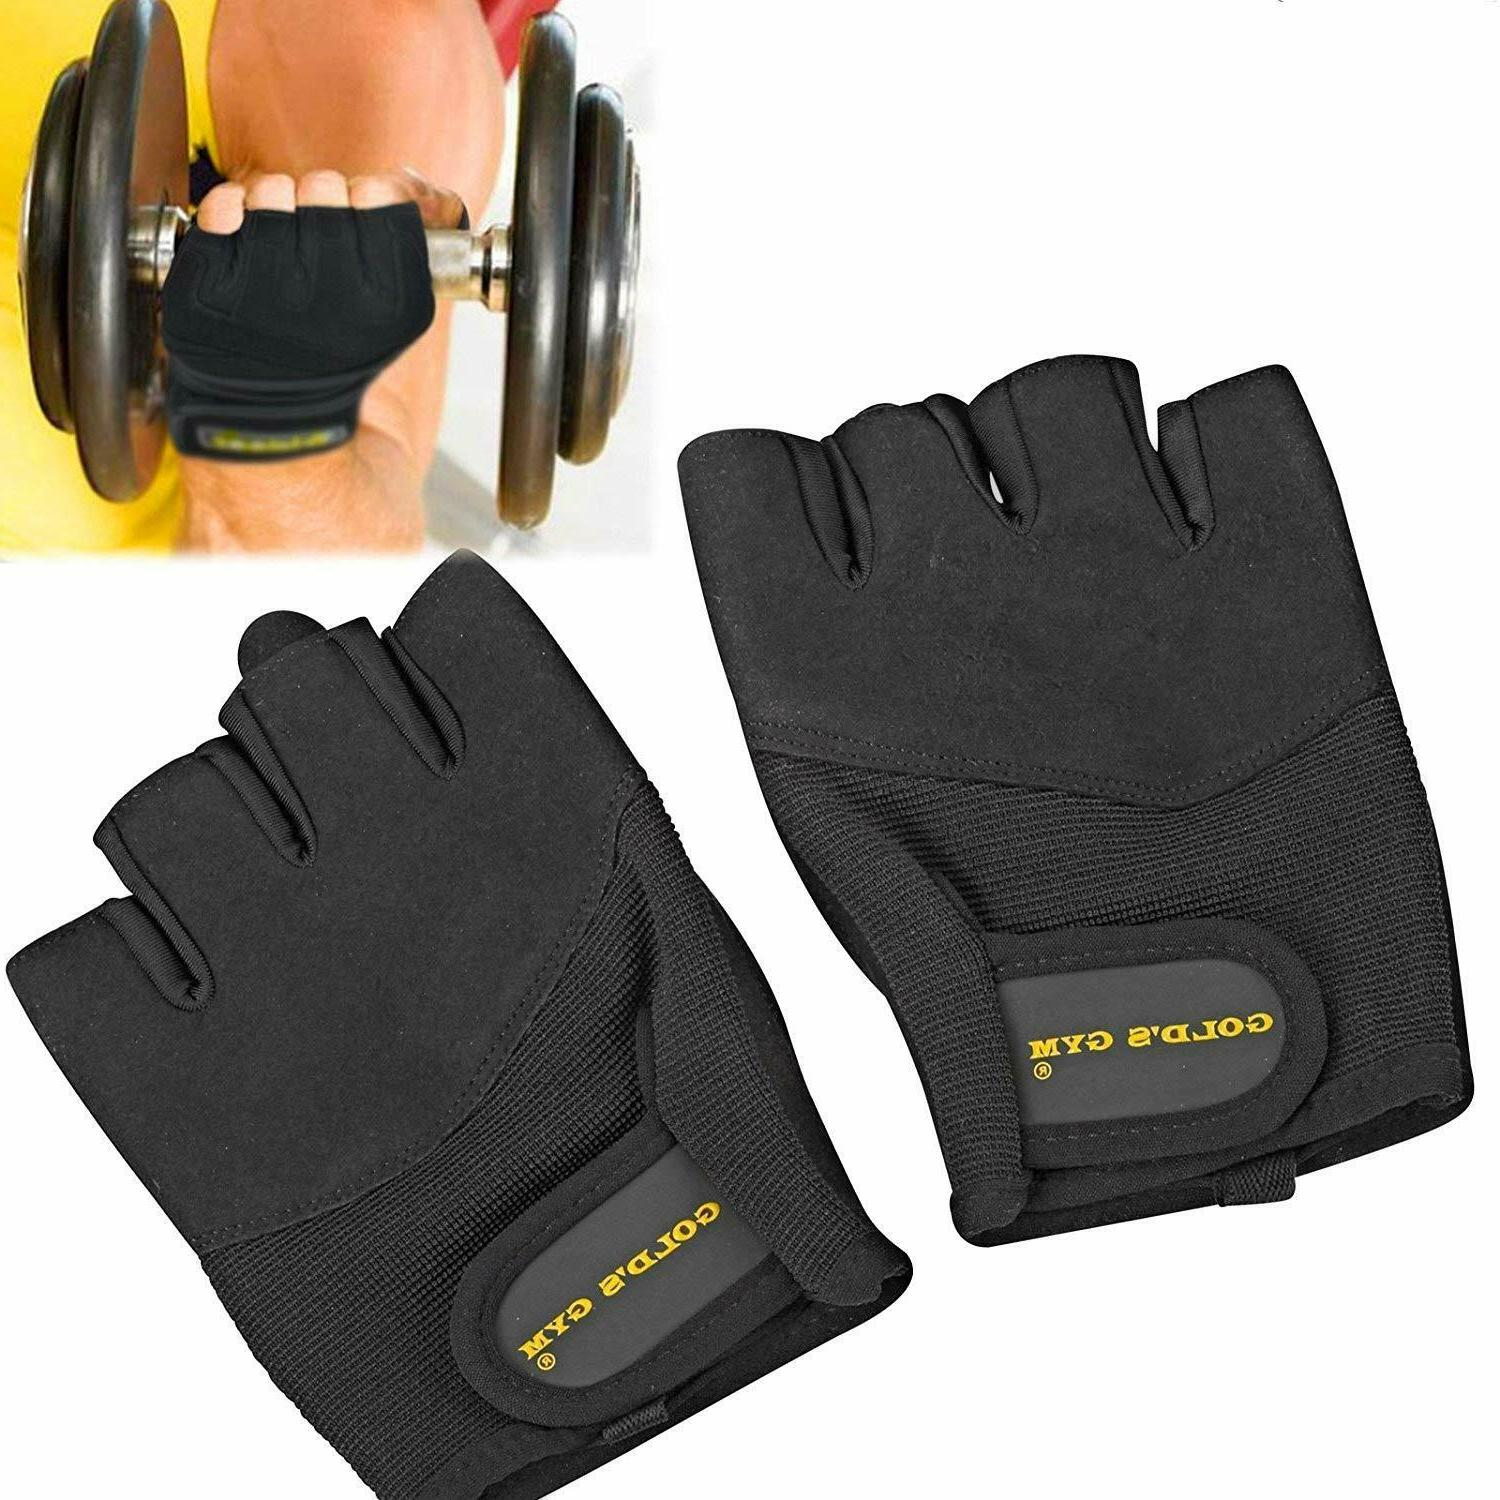 weight lifting gloves classic training gloves size